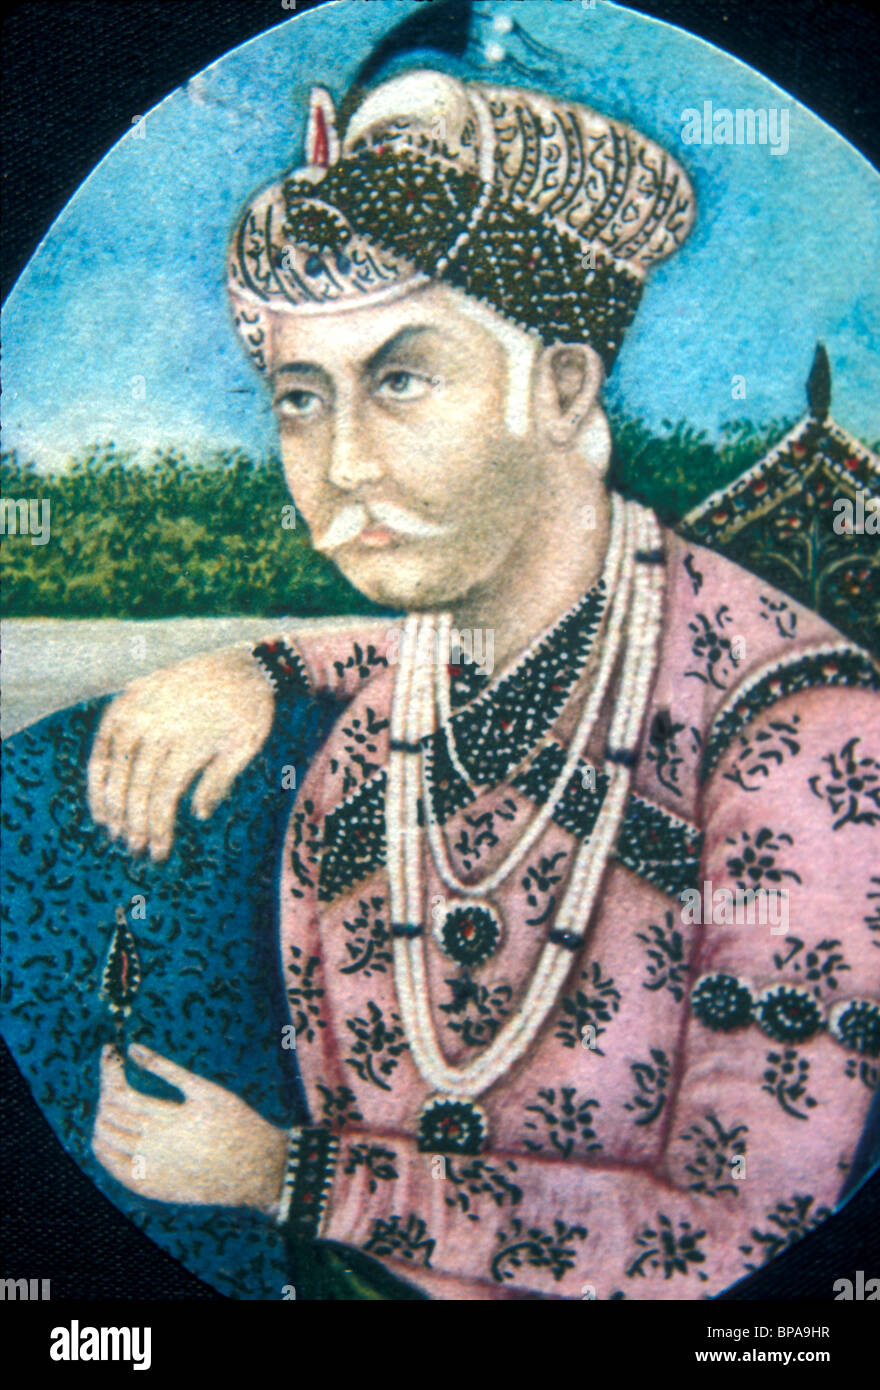 Portrait of Jalal Ud-Din Akbar Mughal emperor of India in the 16th-17th centuries - Stock Image